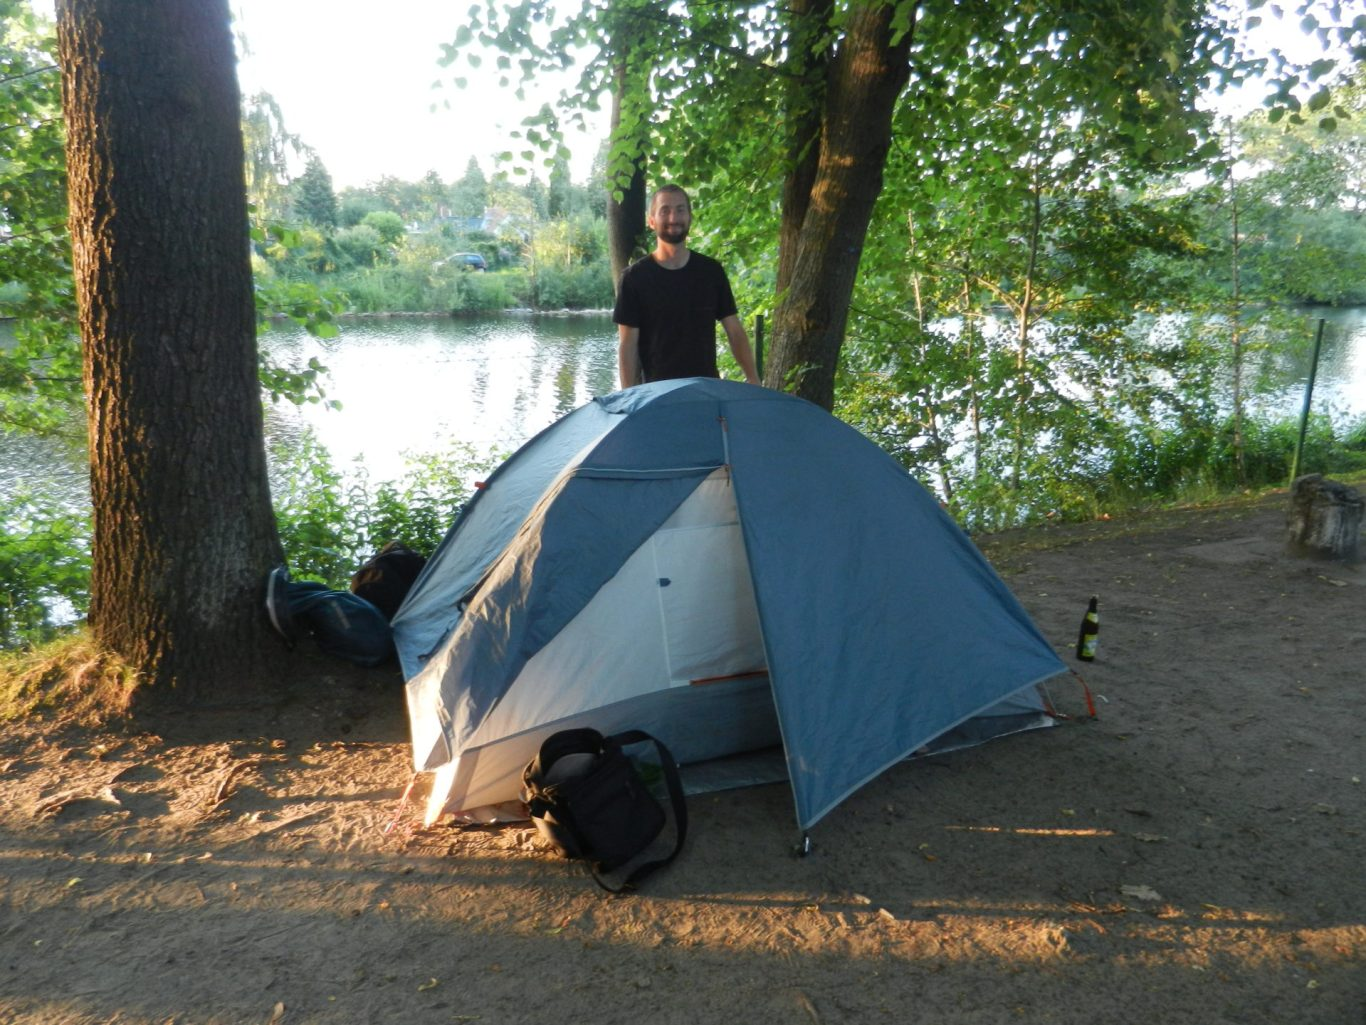 Nathanael with our tent in Berlin, Germany